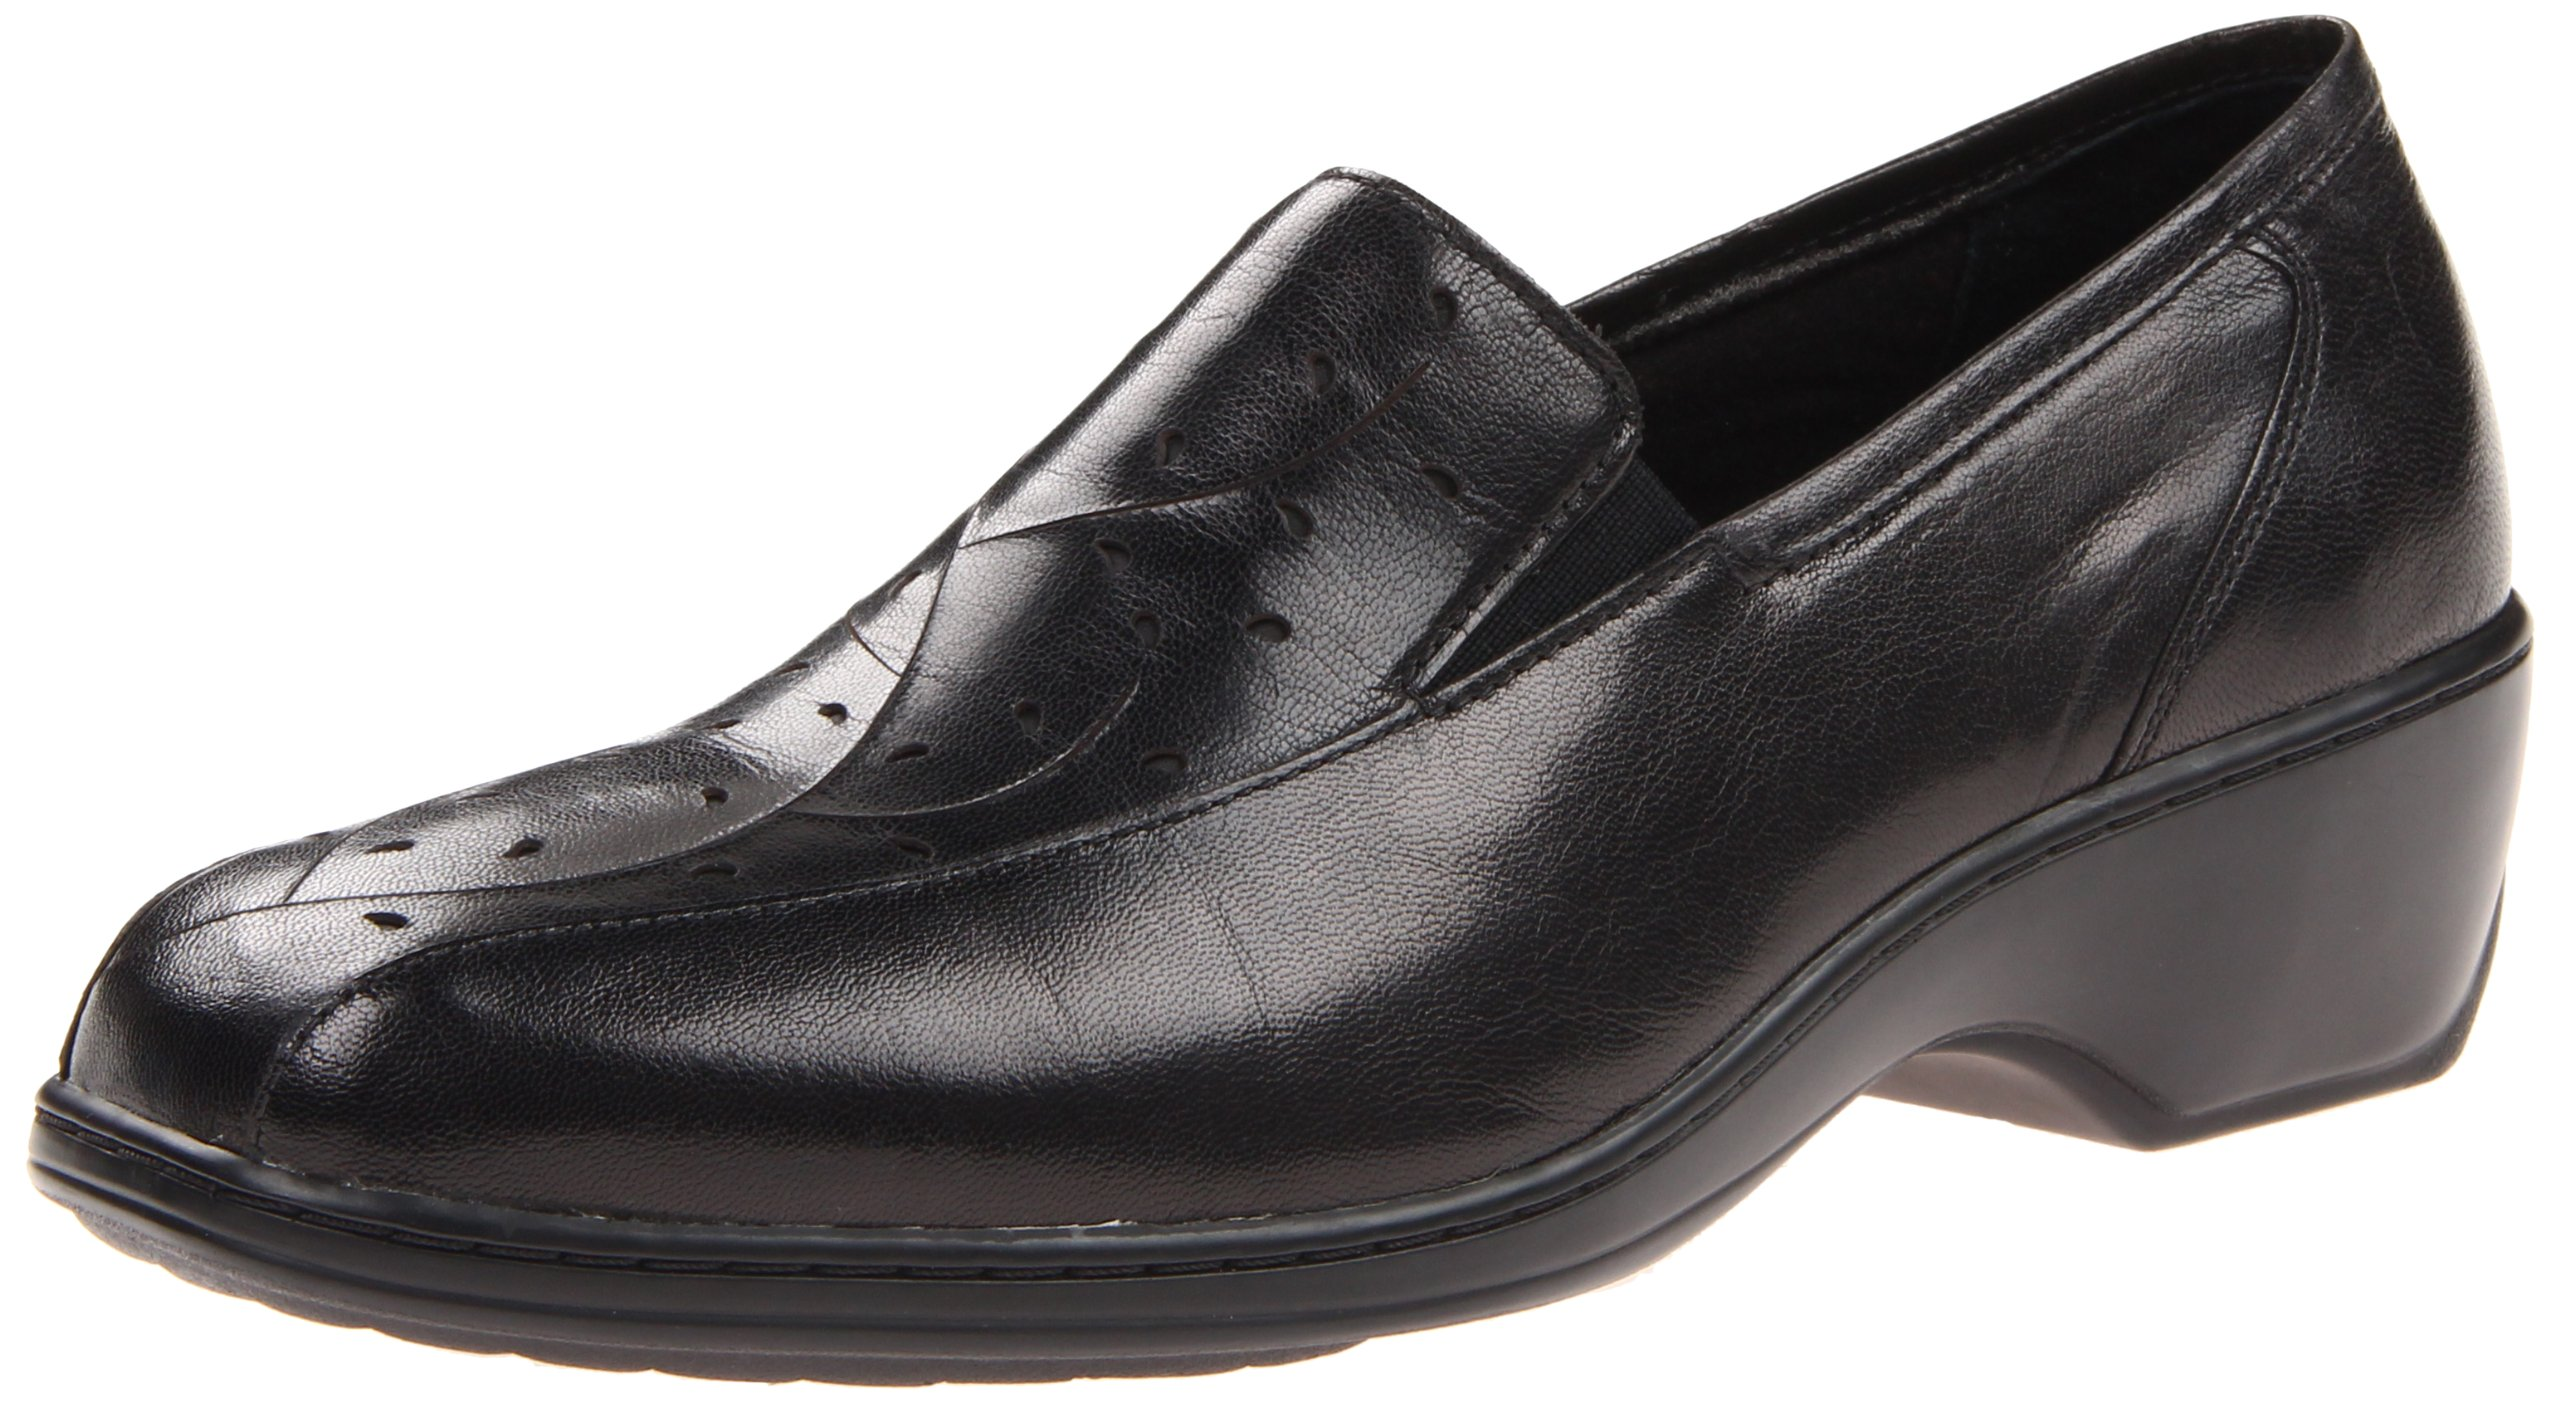 Aravon Women's Kiley Flat, Black, 8 B US